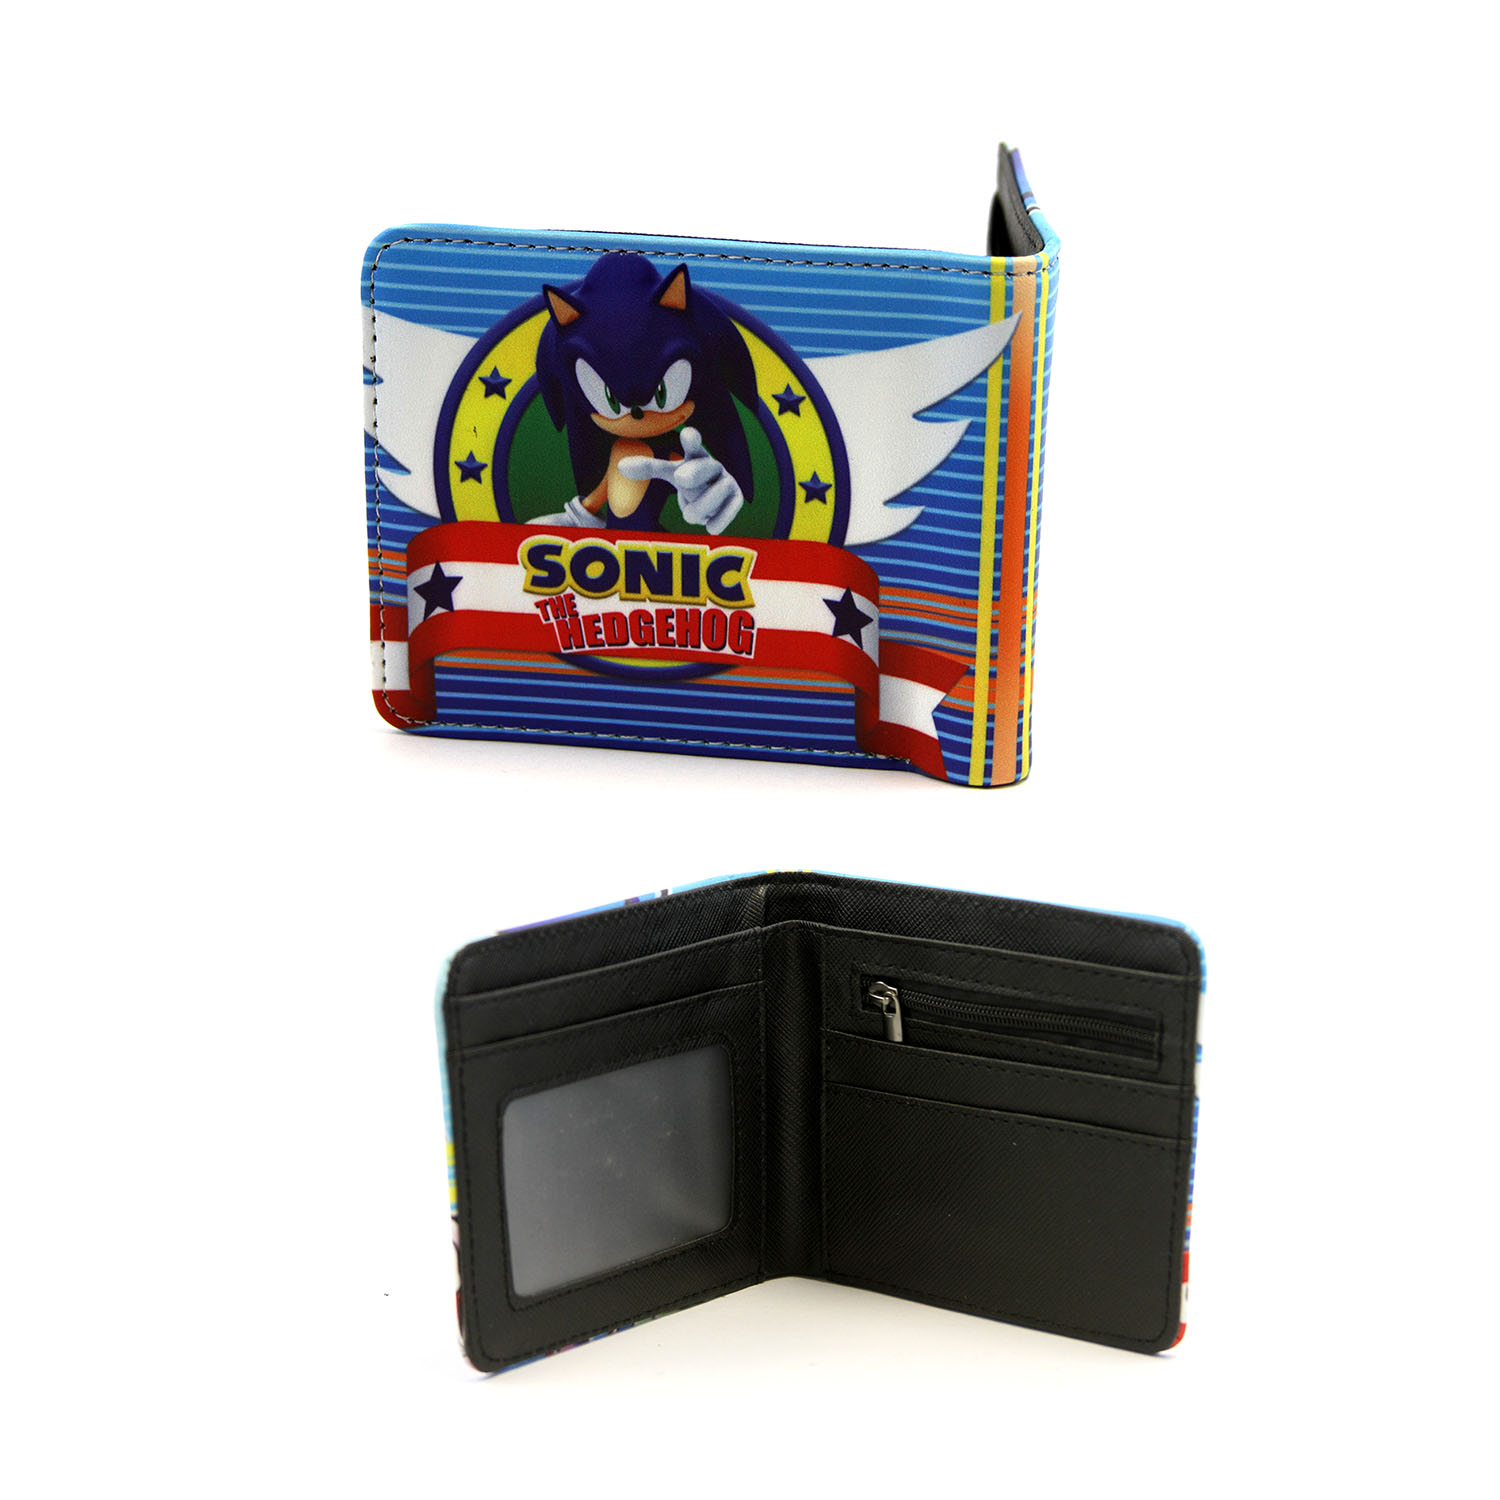 Sonic The Hedgehog 4x5 Bifold Wallet Sonic Classic And Modern 3d New 30656856119 Ebay